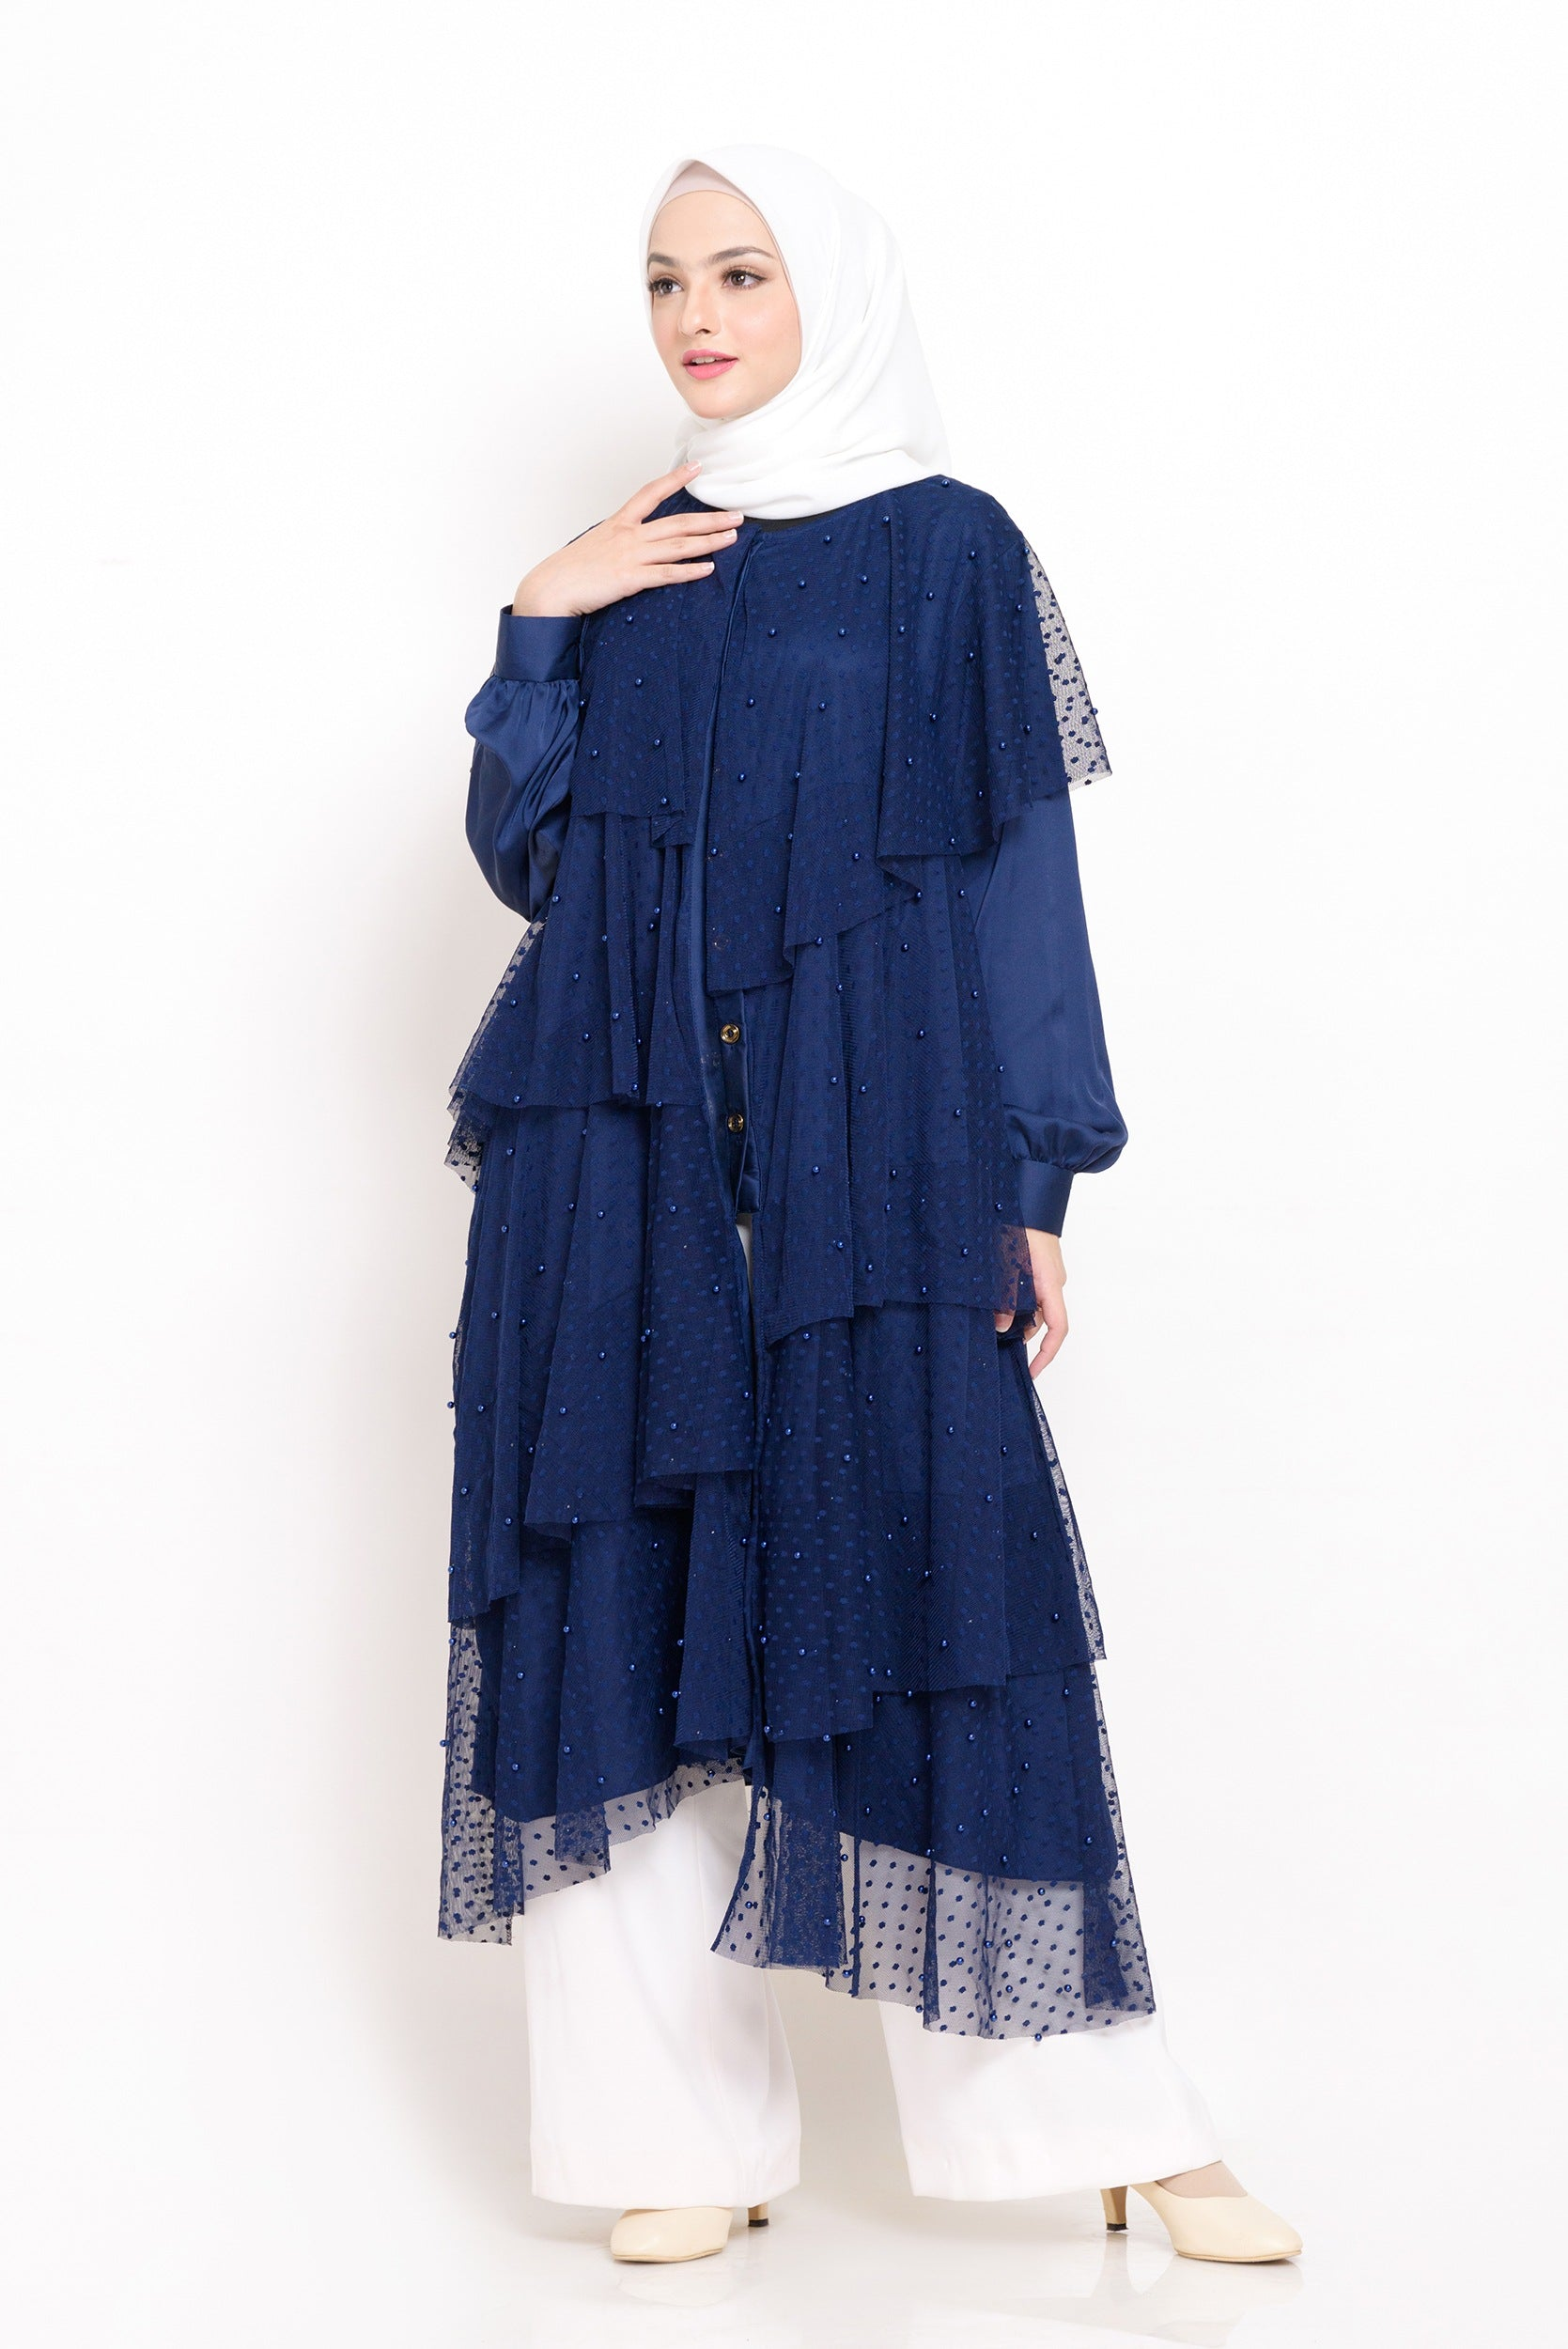 BIA By Zaskia Mecca - Ohara Navy Dress